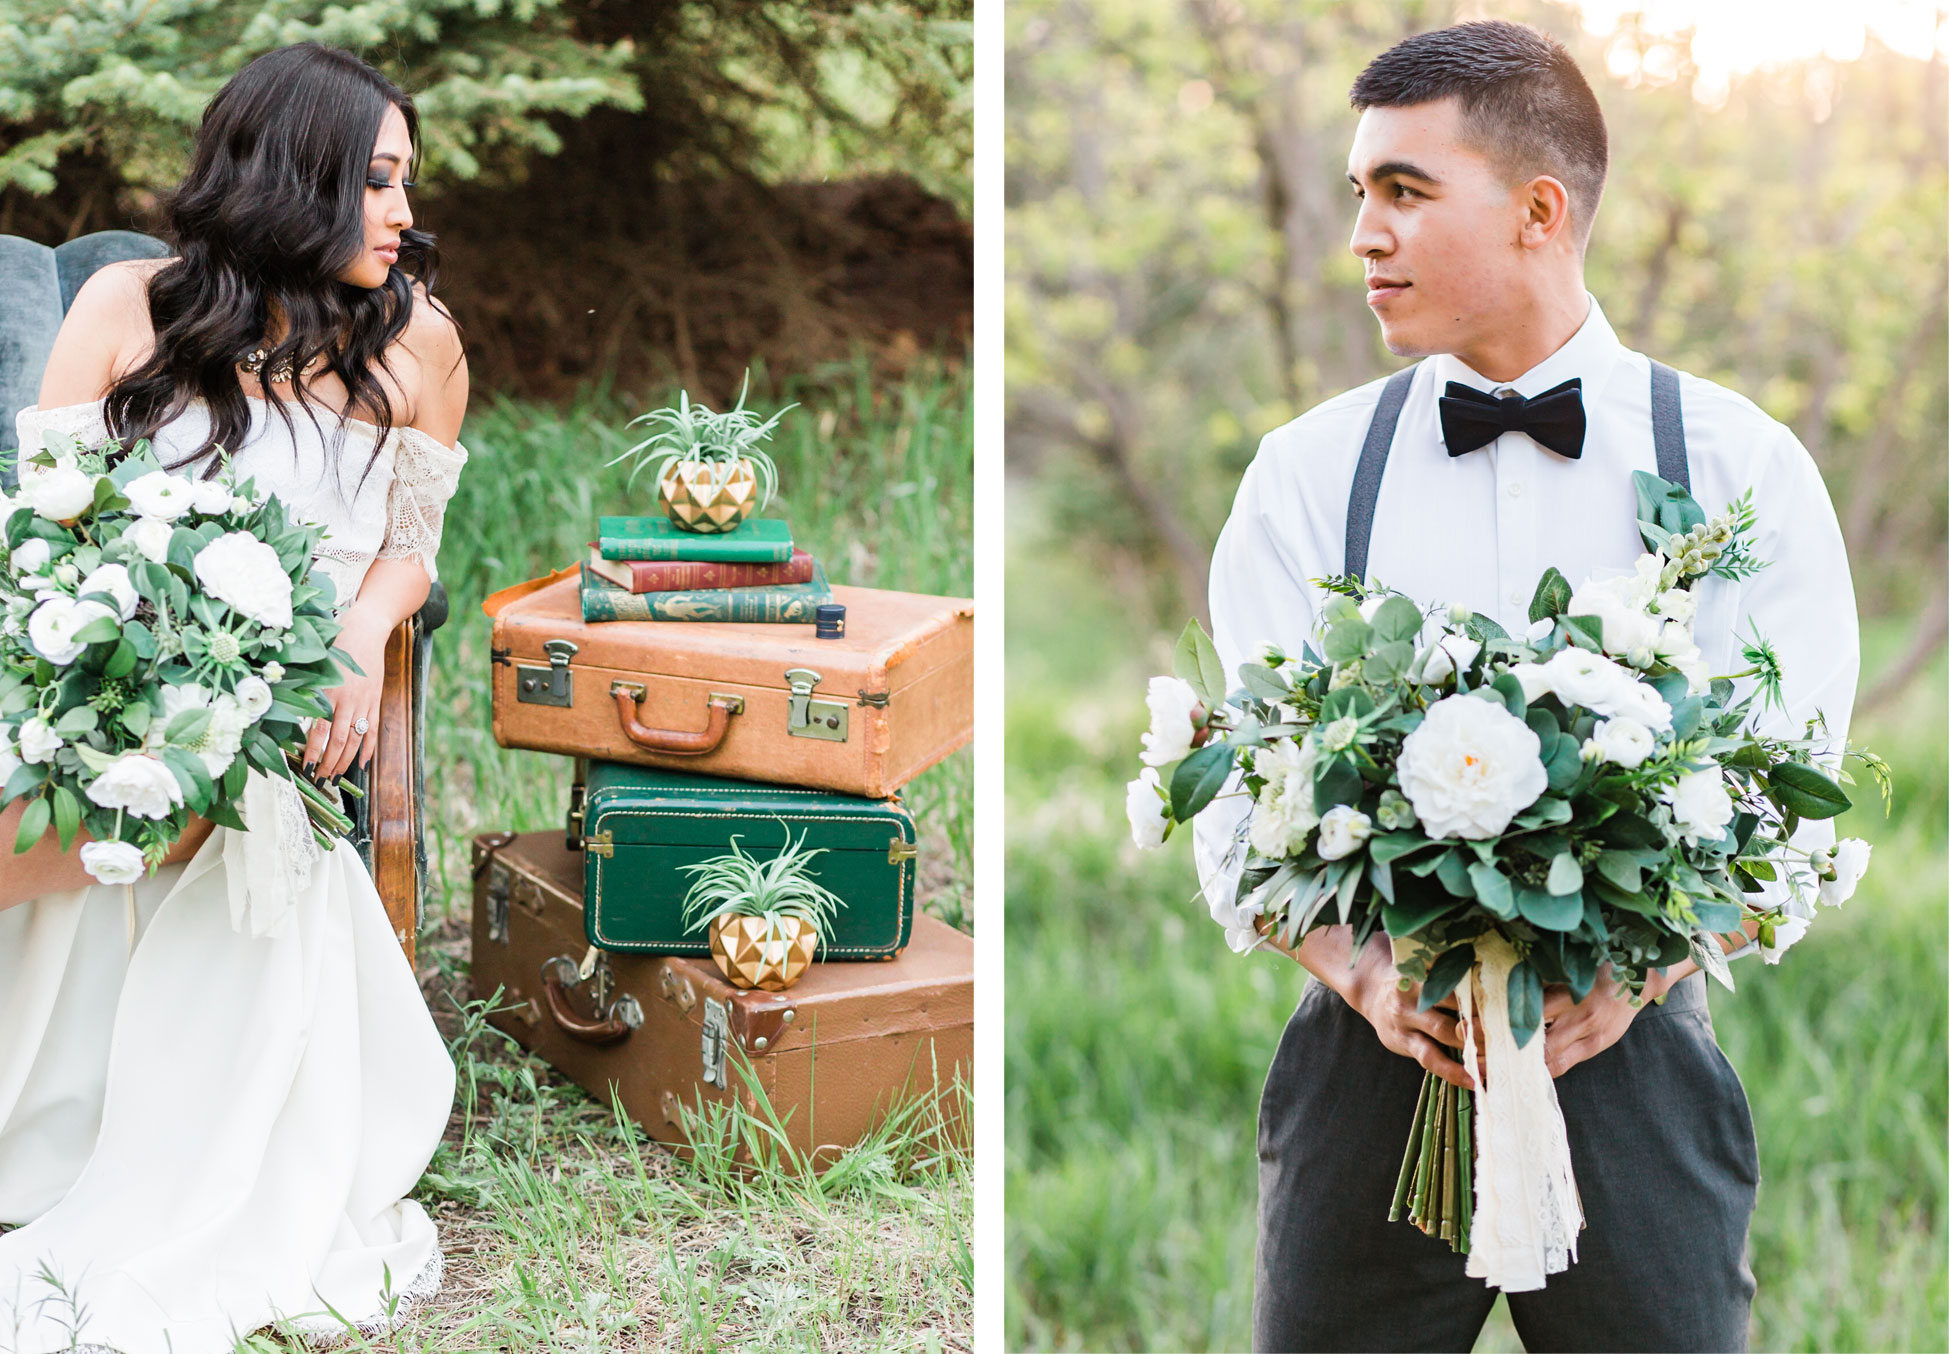 Vintage Boho bride and groom